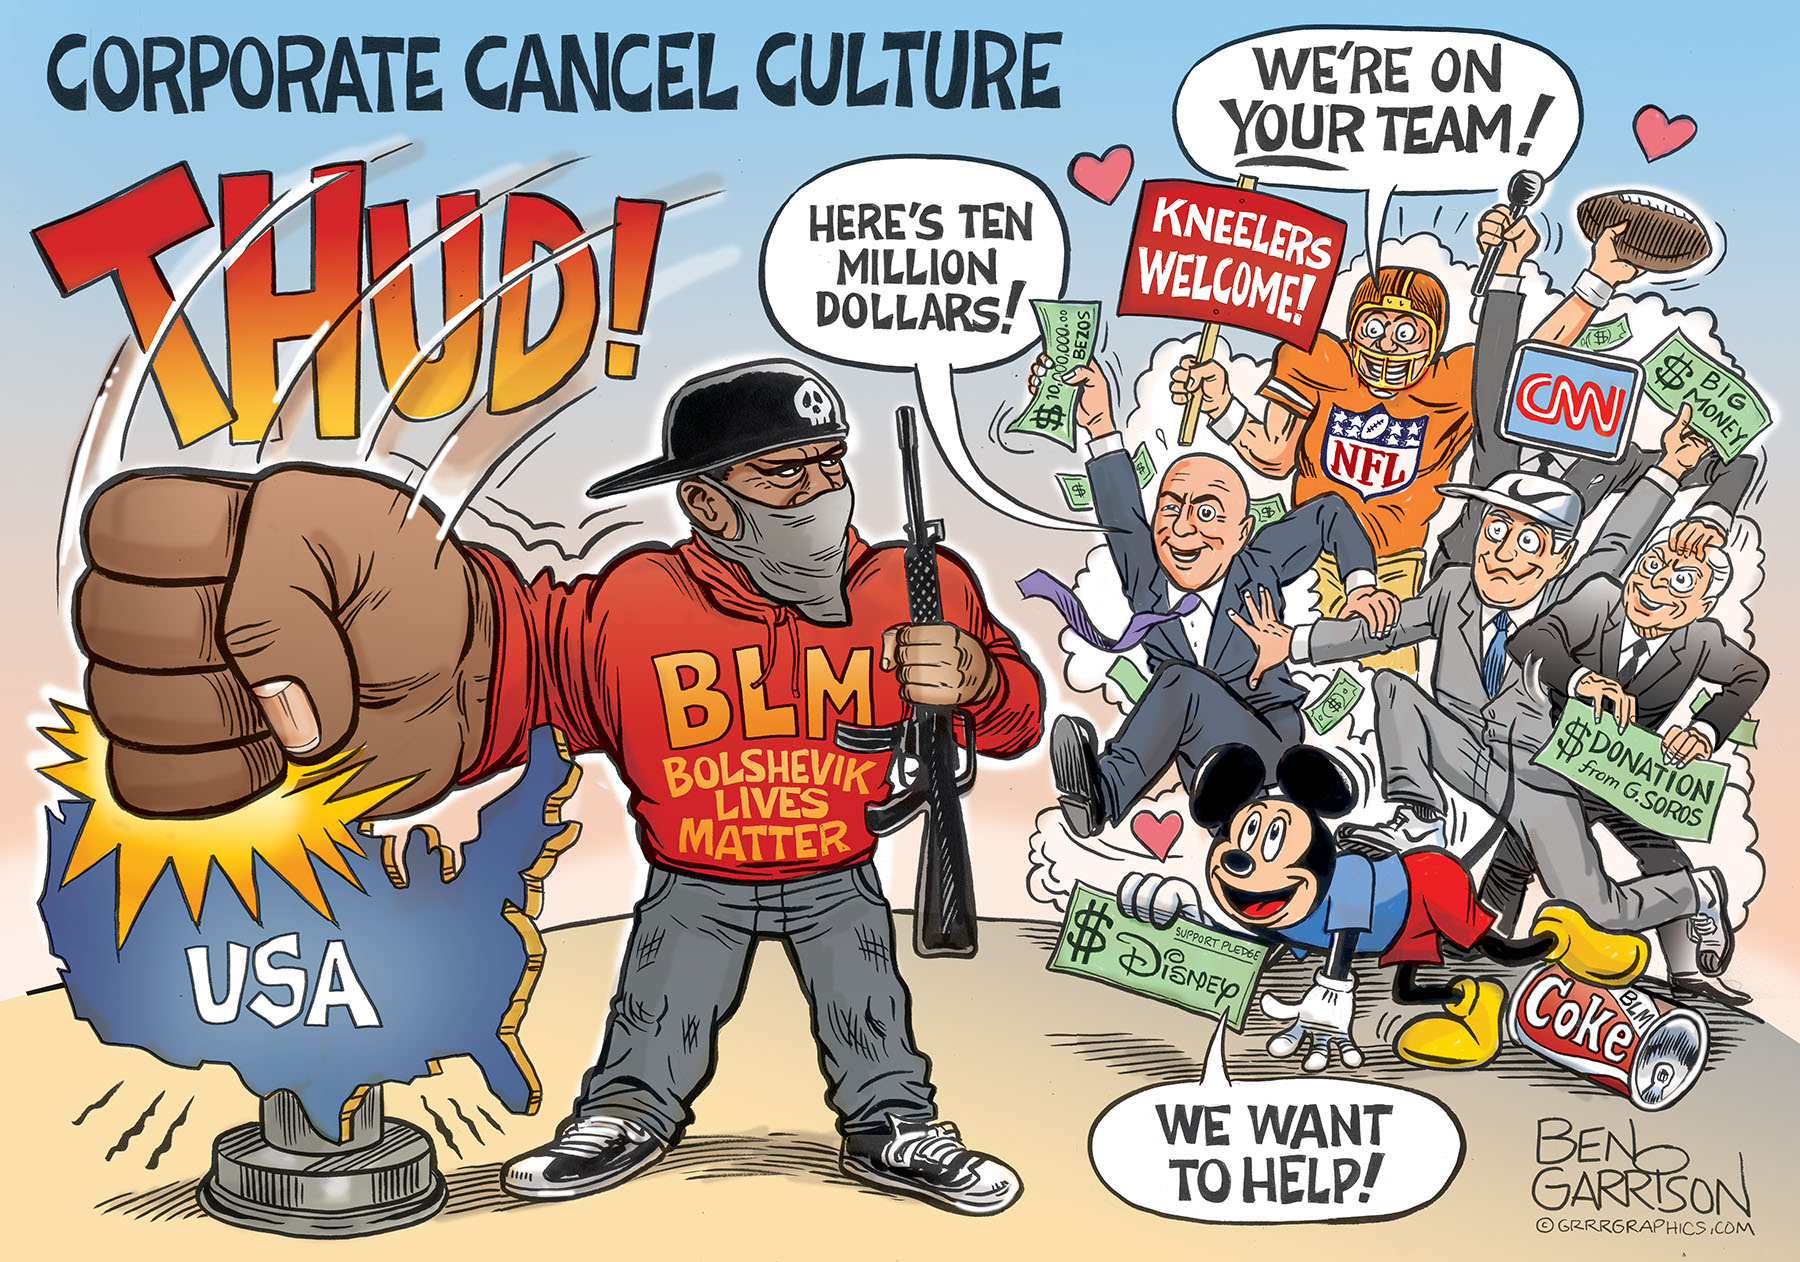 CORPORATE CANCEL CULTURE – The Burning Platform